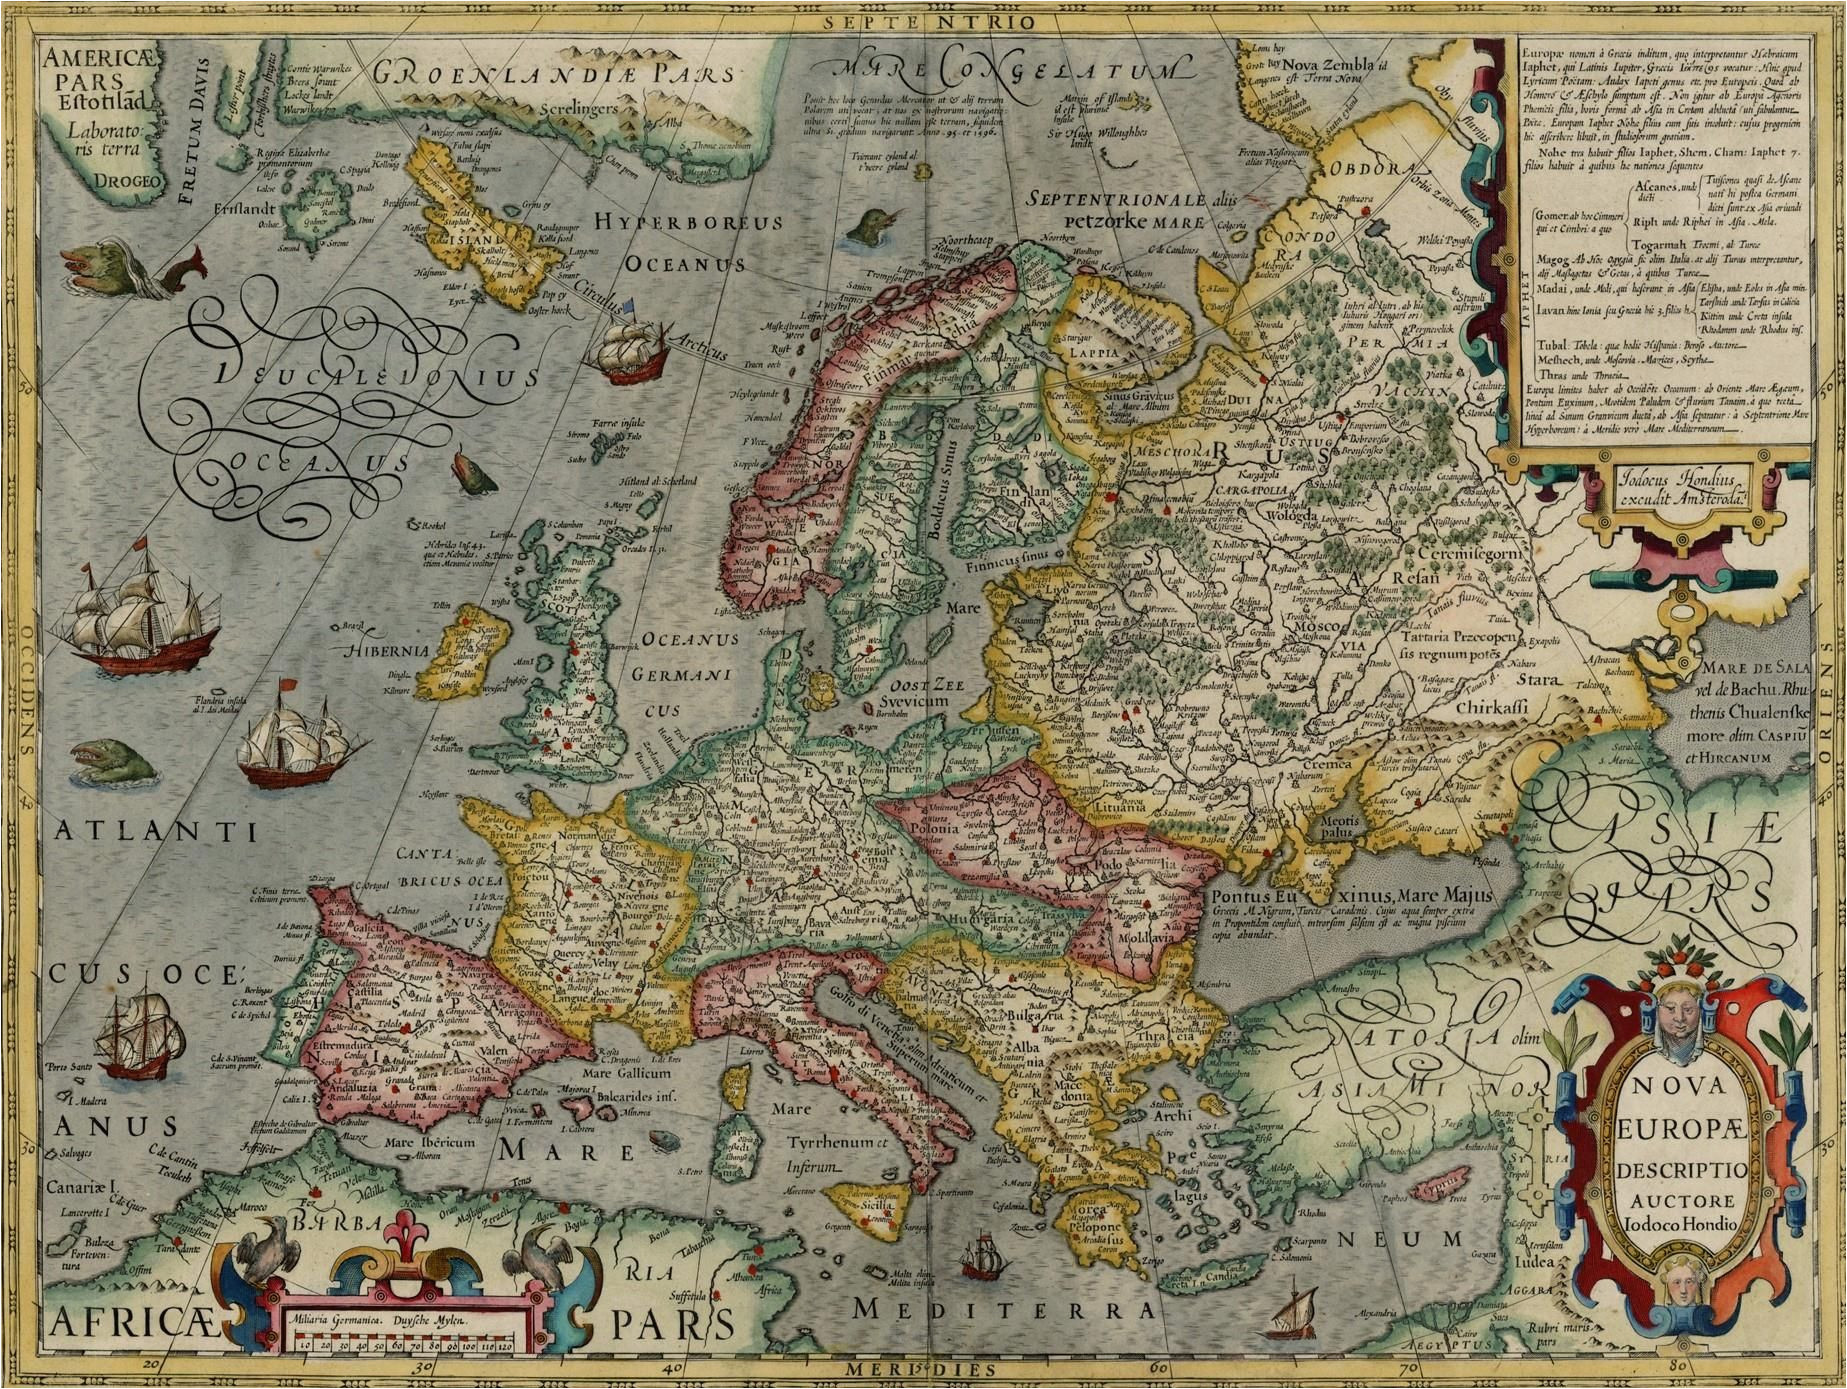 map of europe by jodocus hondius 1630 the map shows a